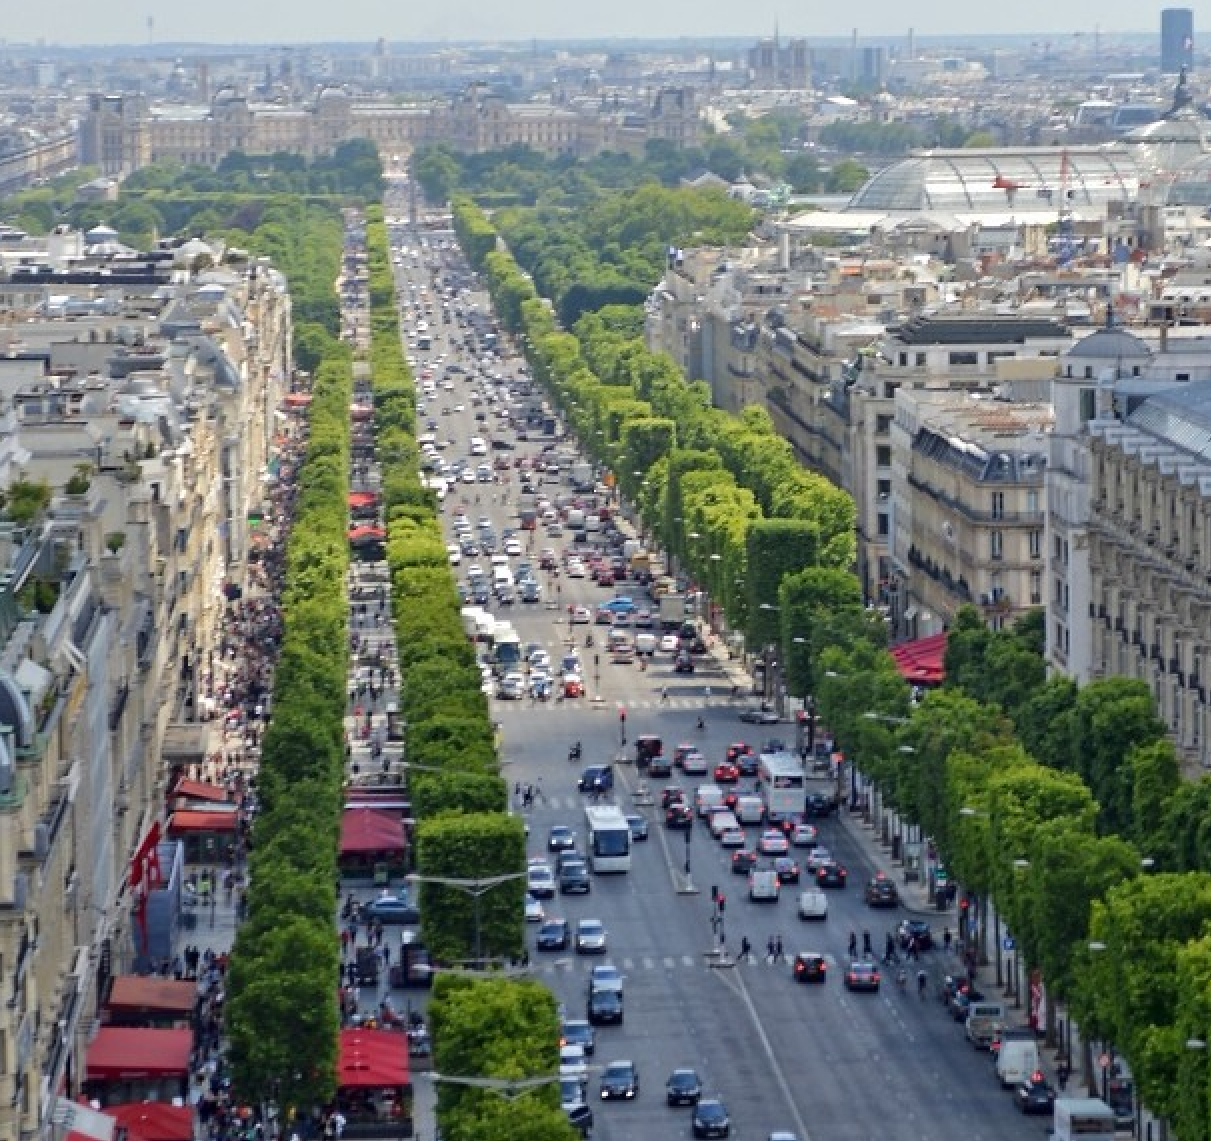 Paris champs elysee